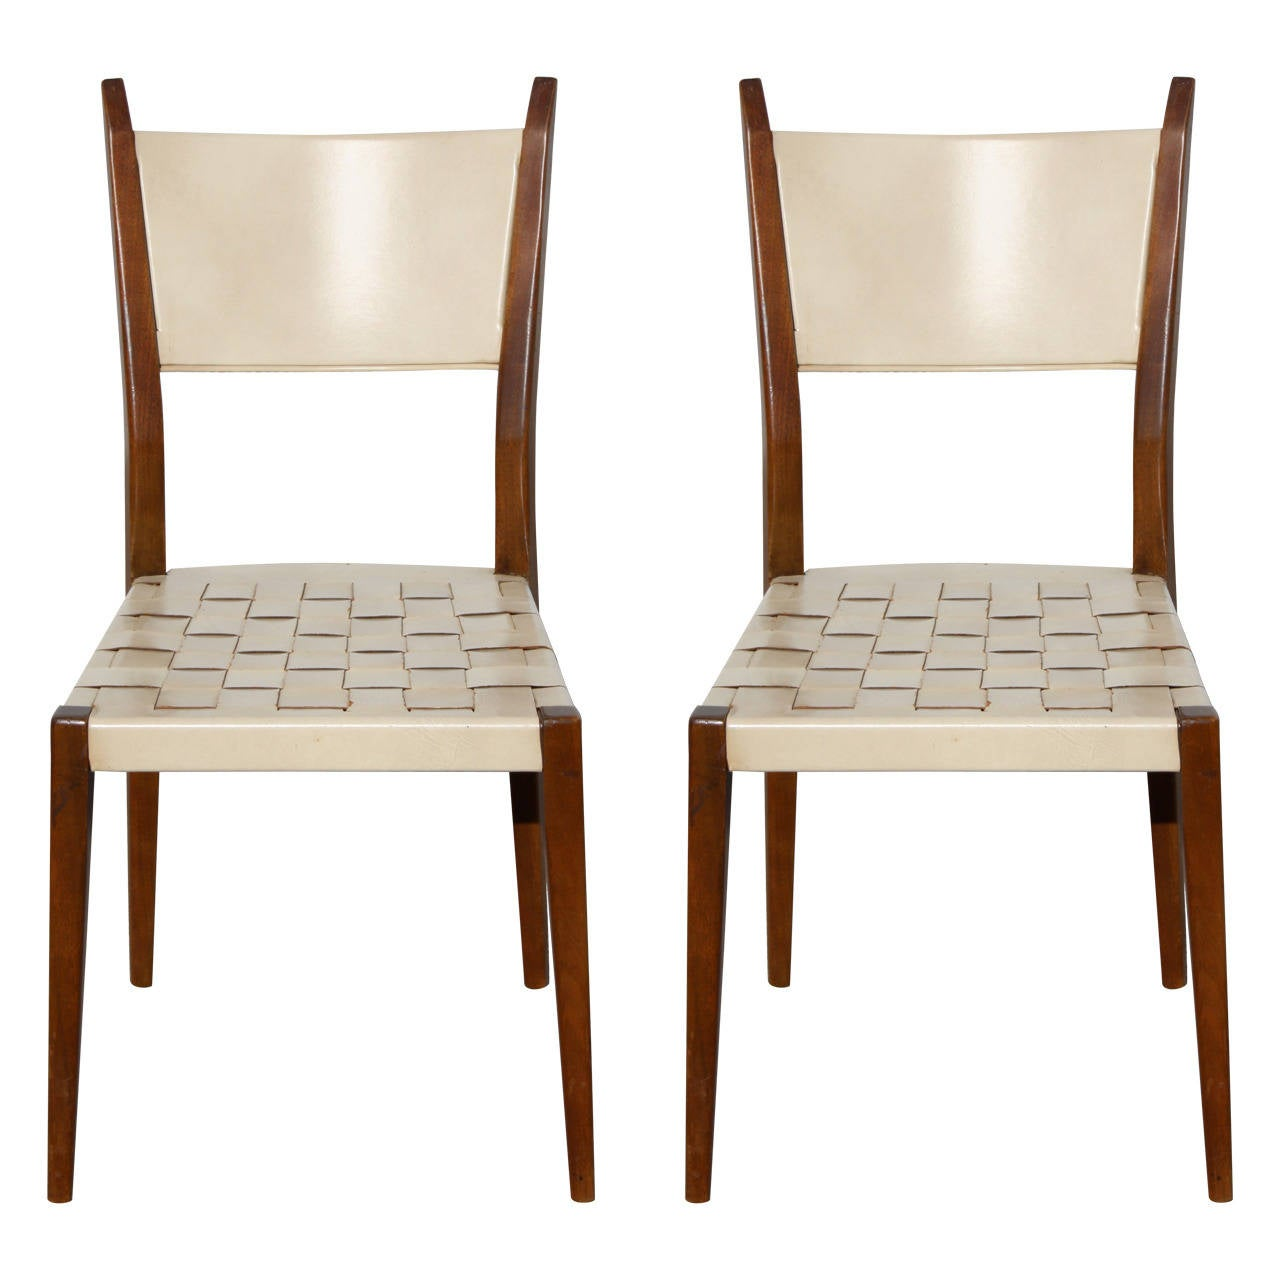 Pair of Paul McCobb Side Chairs with Leather Woven Strap